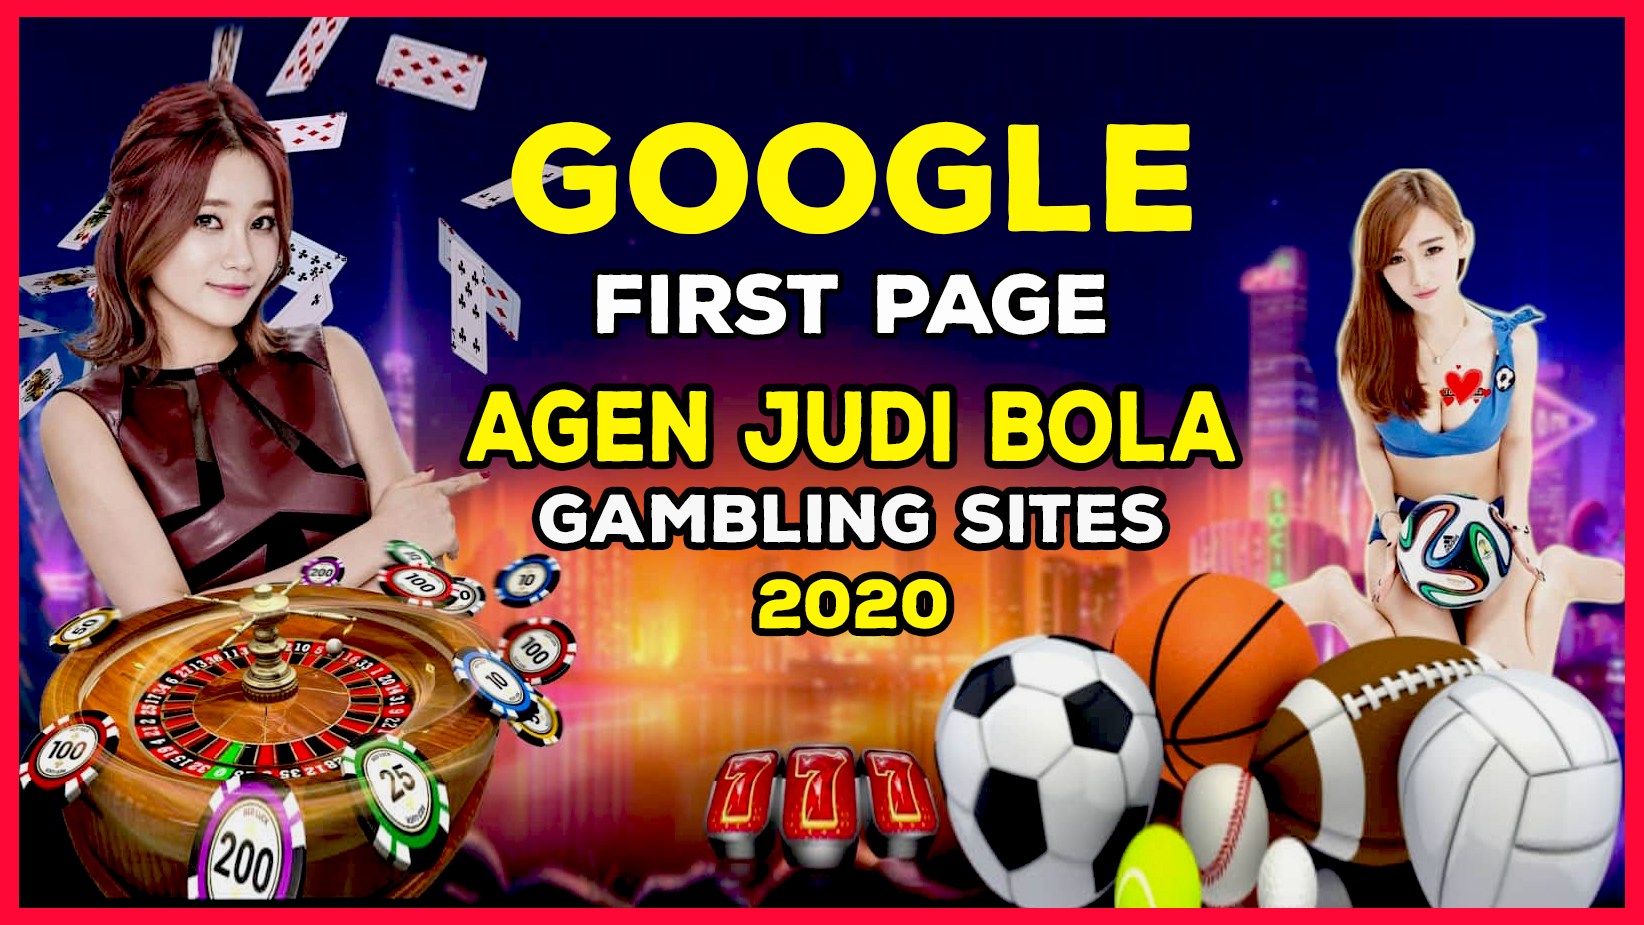 Agen Judi Bola Gambling Sites Guaranteed Google 1st Page Super first